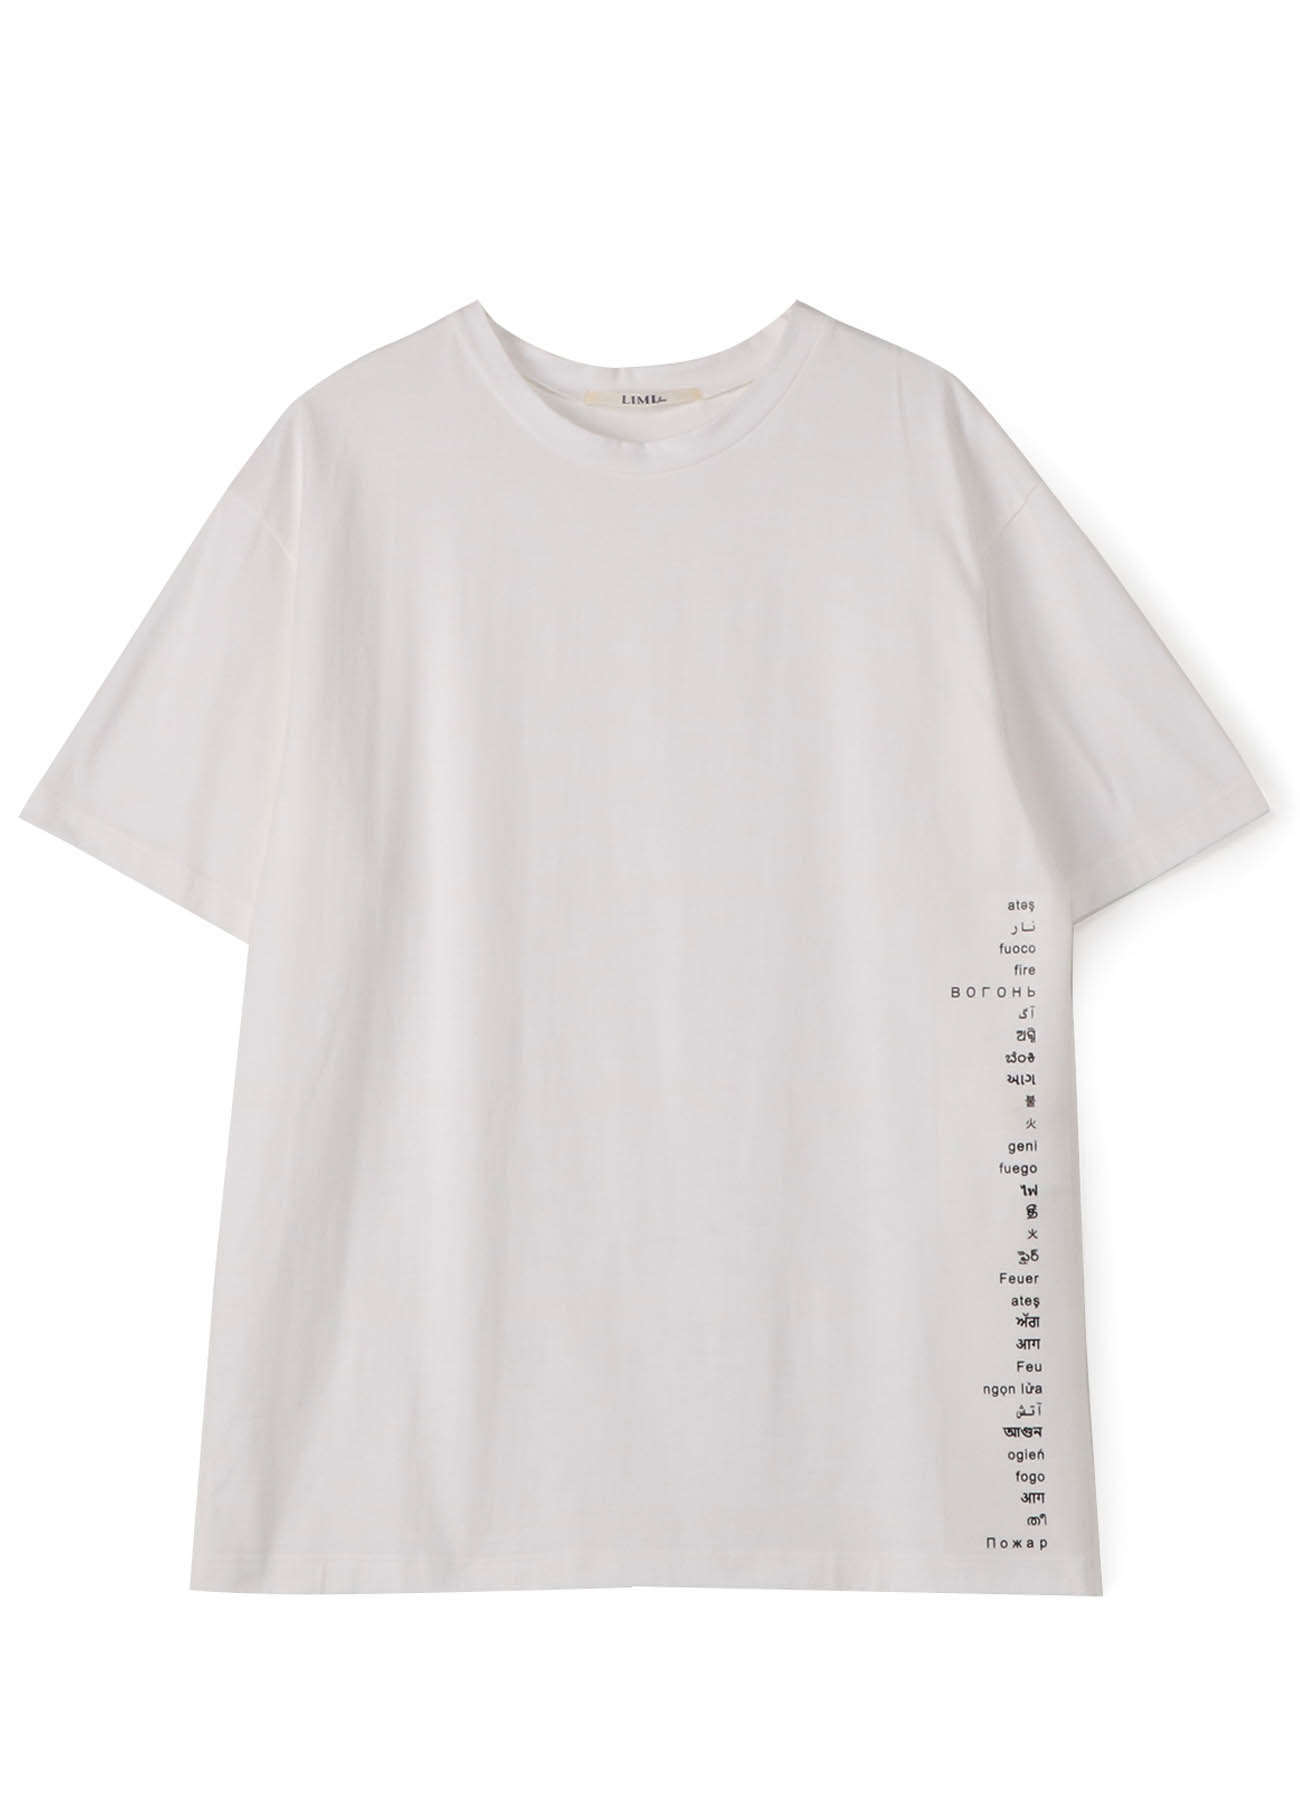 Words Feu Print 1 Over Size T